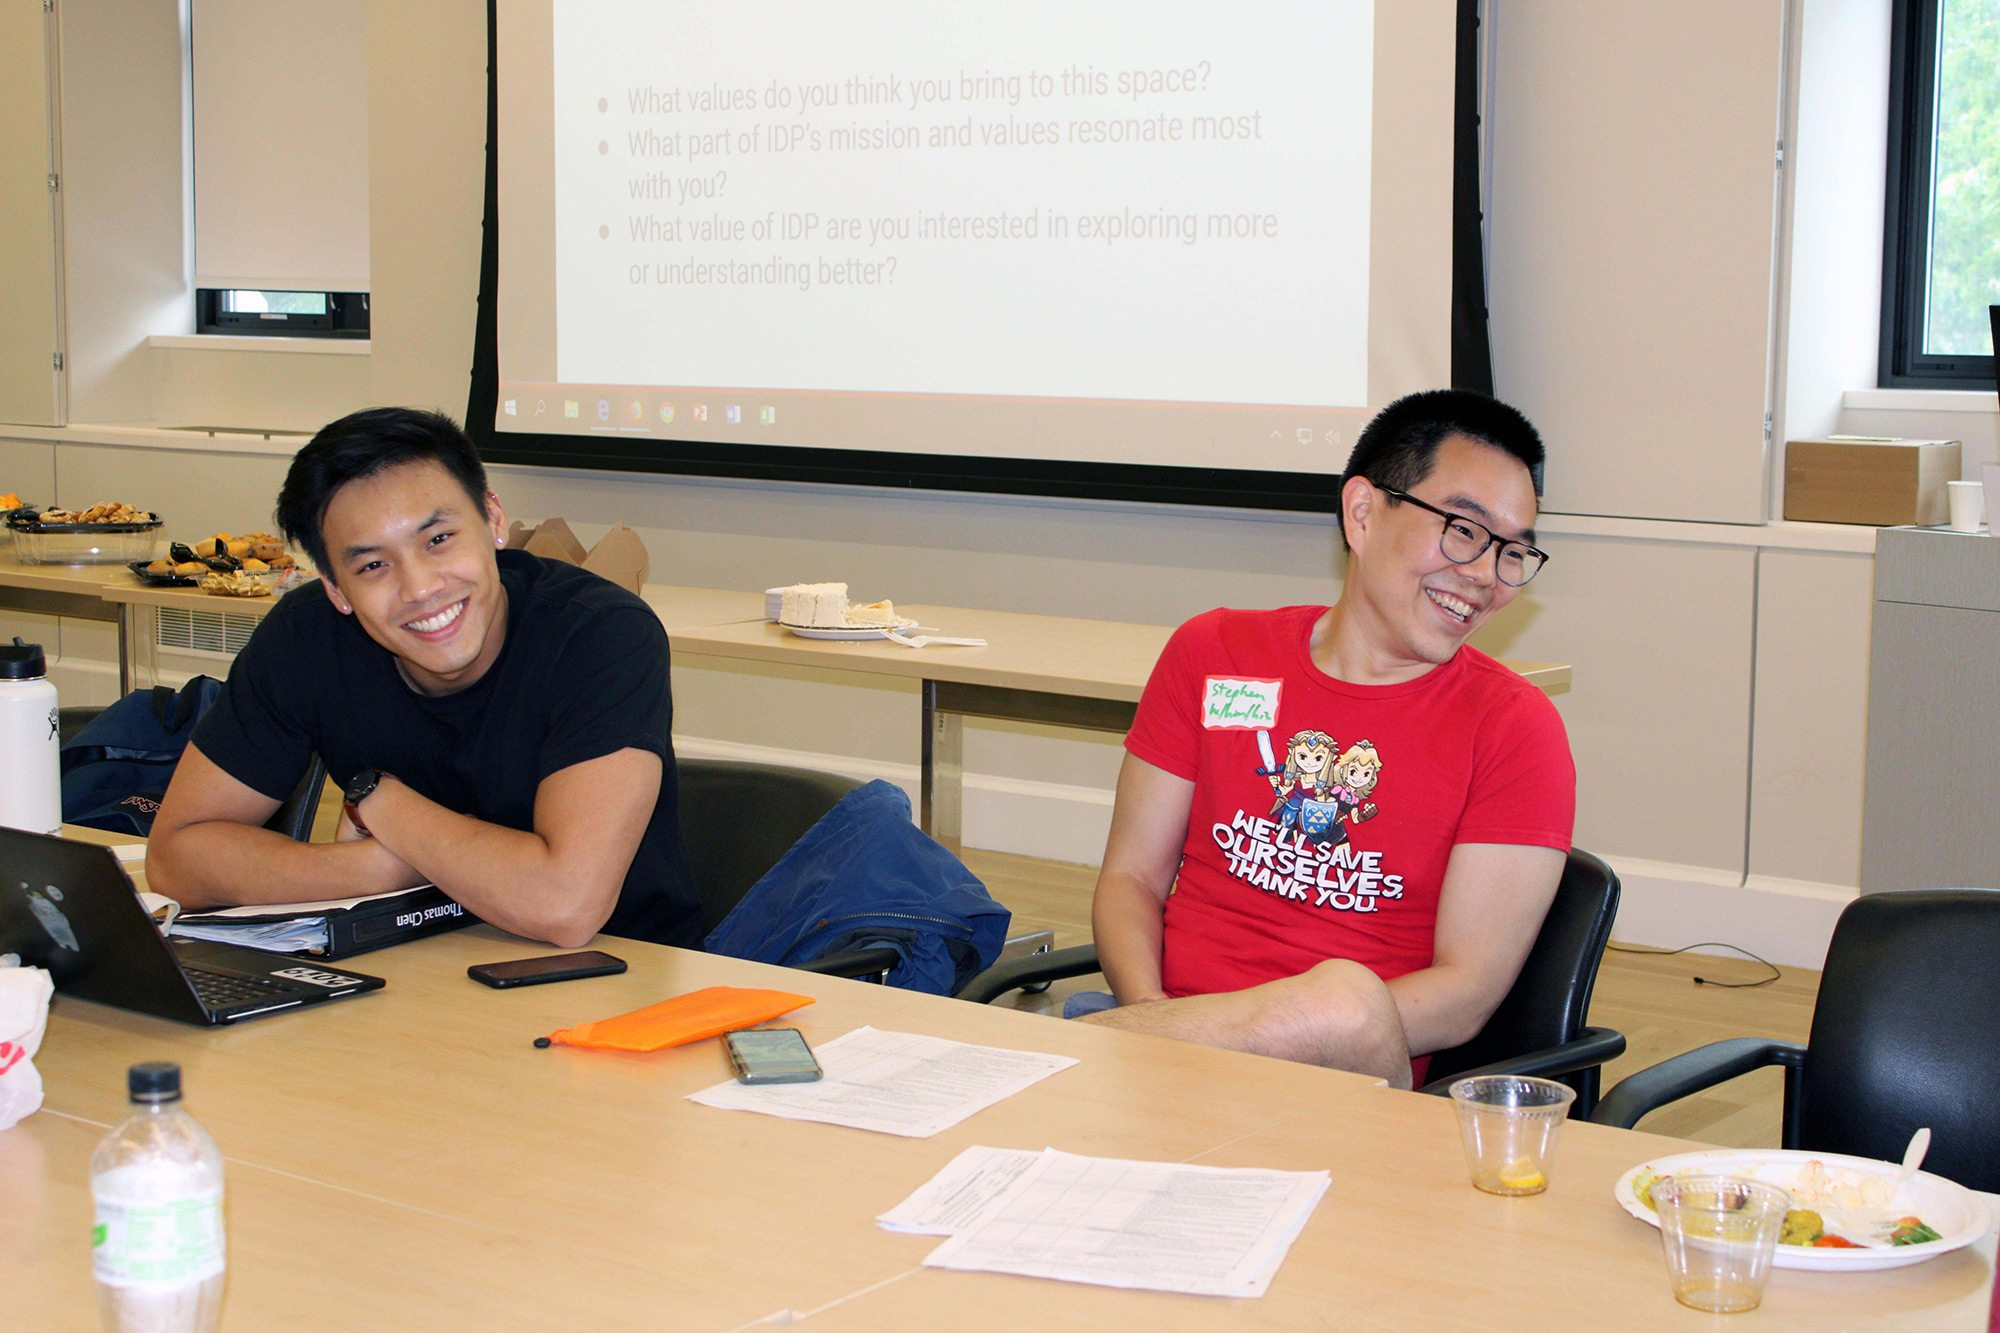 Reflecting on values during facilitator training in fall 2019. (L to R) Tom Chen '19, MEng '20; Stephen Kim, PhD candidate